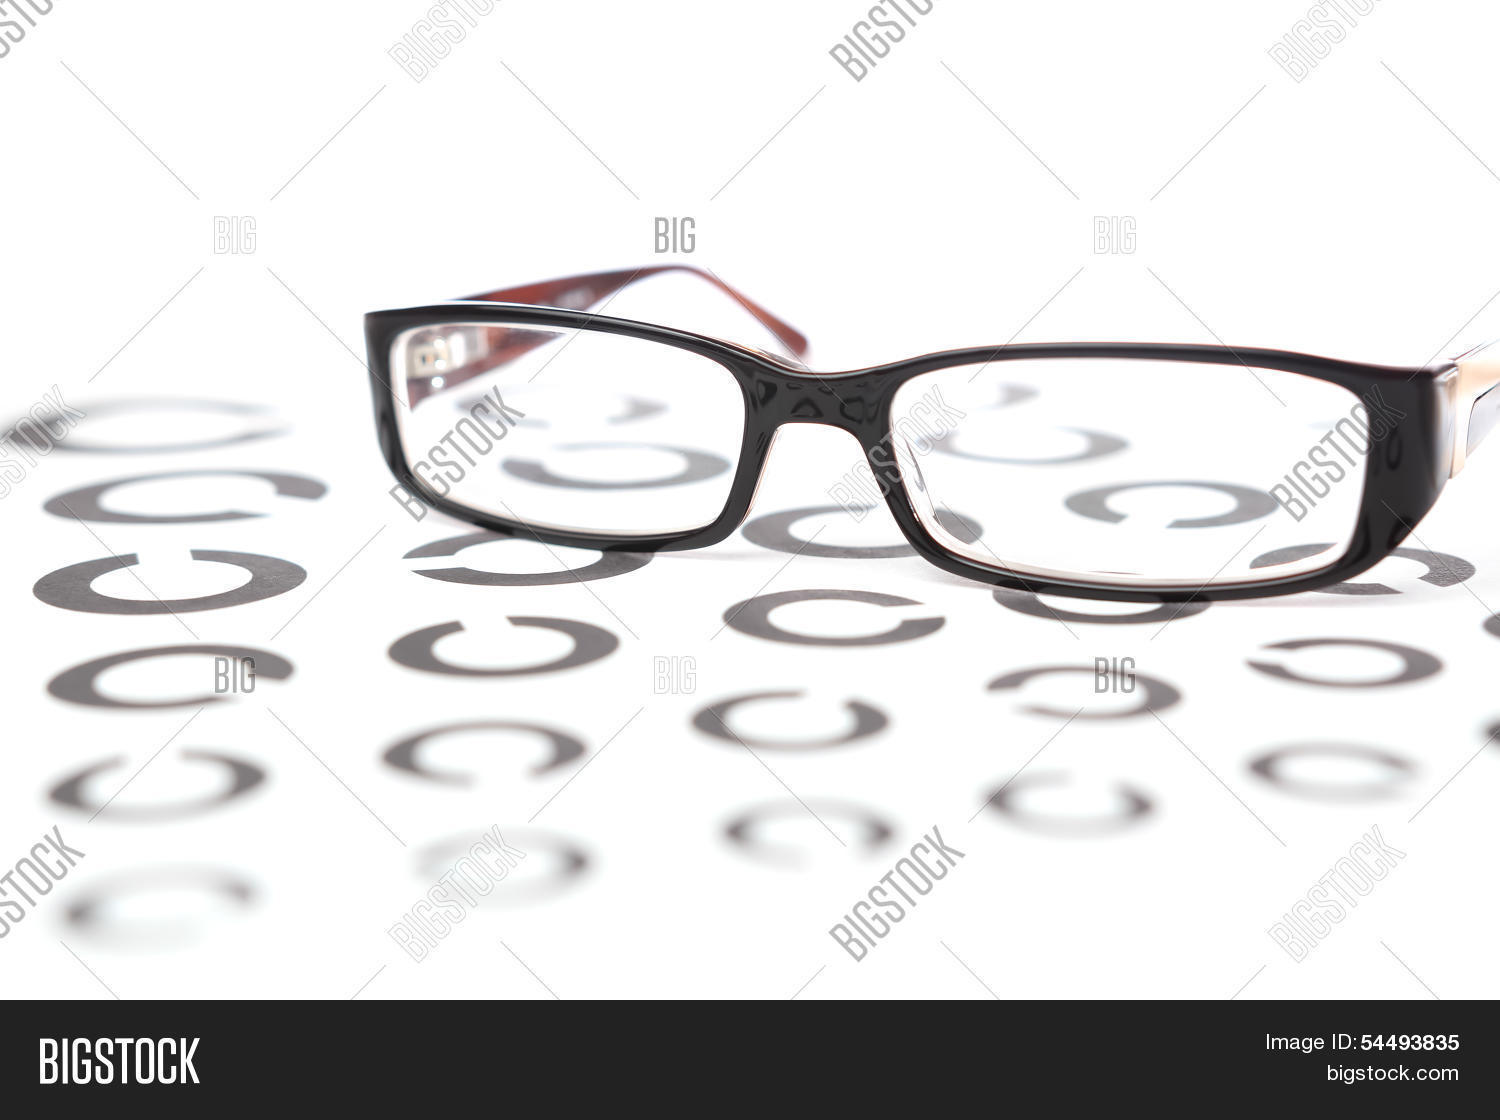 aid,amblyopia,ametropia,blind,blindness,blur,bright,brightness,brown,check,circles,close-up,closeup,colors,control,defect,depth,diopter,doctor,exam,examination,eye,field,frame,glass,health,healthy,hyperopia,hyperopic,landolt,lens,look,lying,myopia,myopic,oculist,ophthalmic,optical,optician,rings,see,sharpness,spectacle,temple,test,tone,vitality,wellbeing,wellness,white